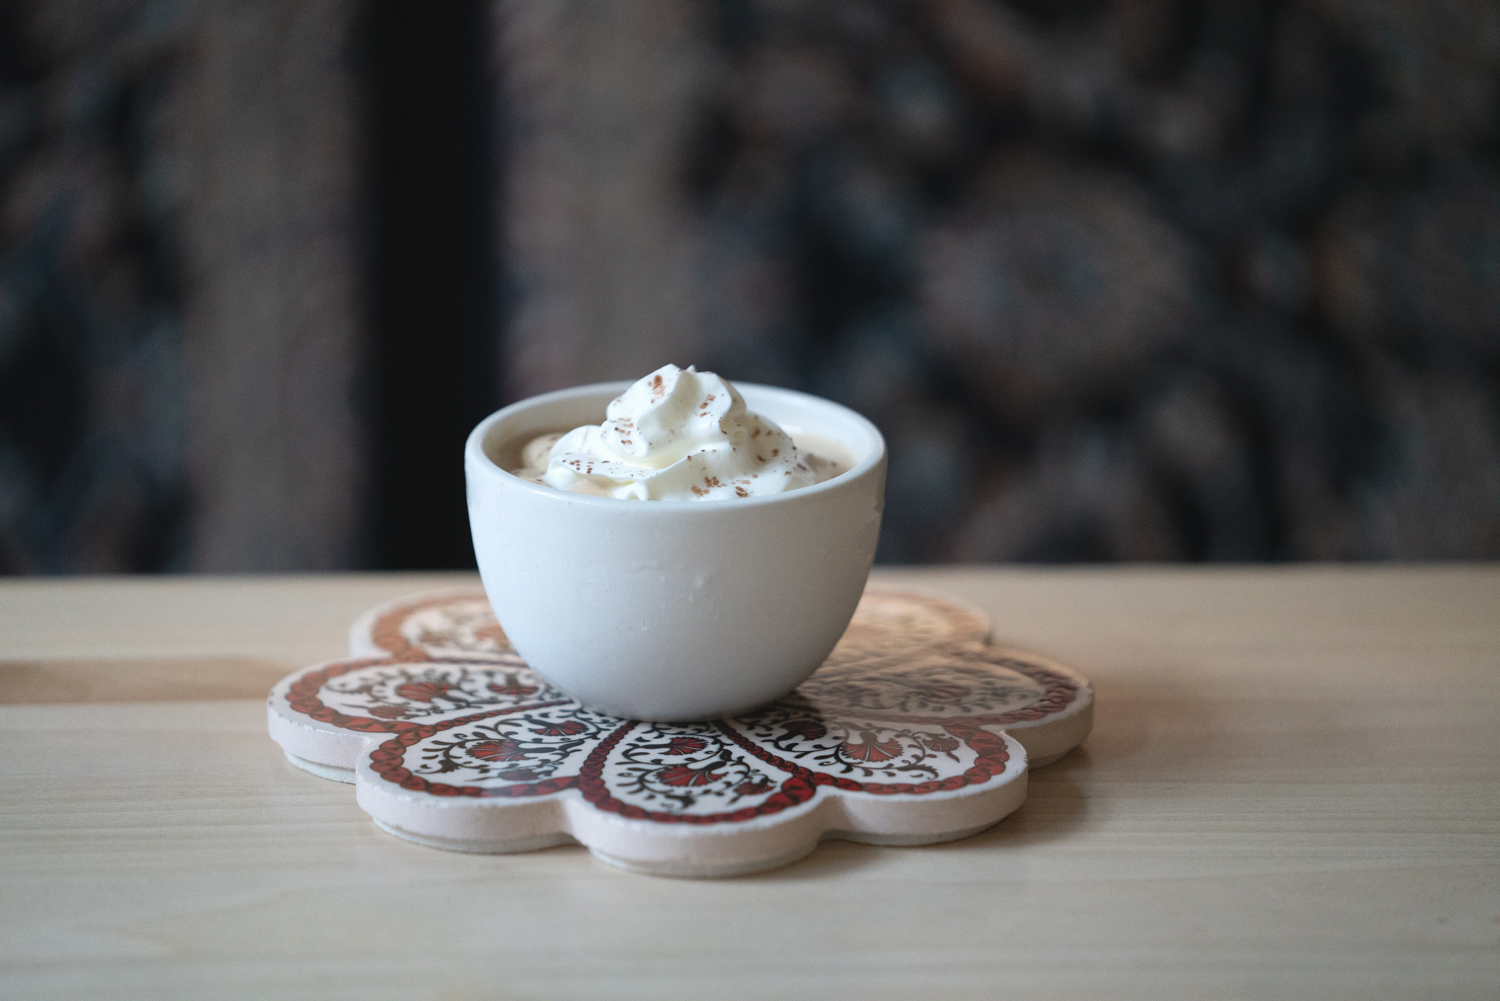 A cup filled with a botta chai latte sits atop a floral designed coaster at Botta Chai Bar in Saskatoon Saskatchewan.